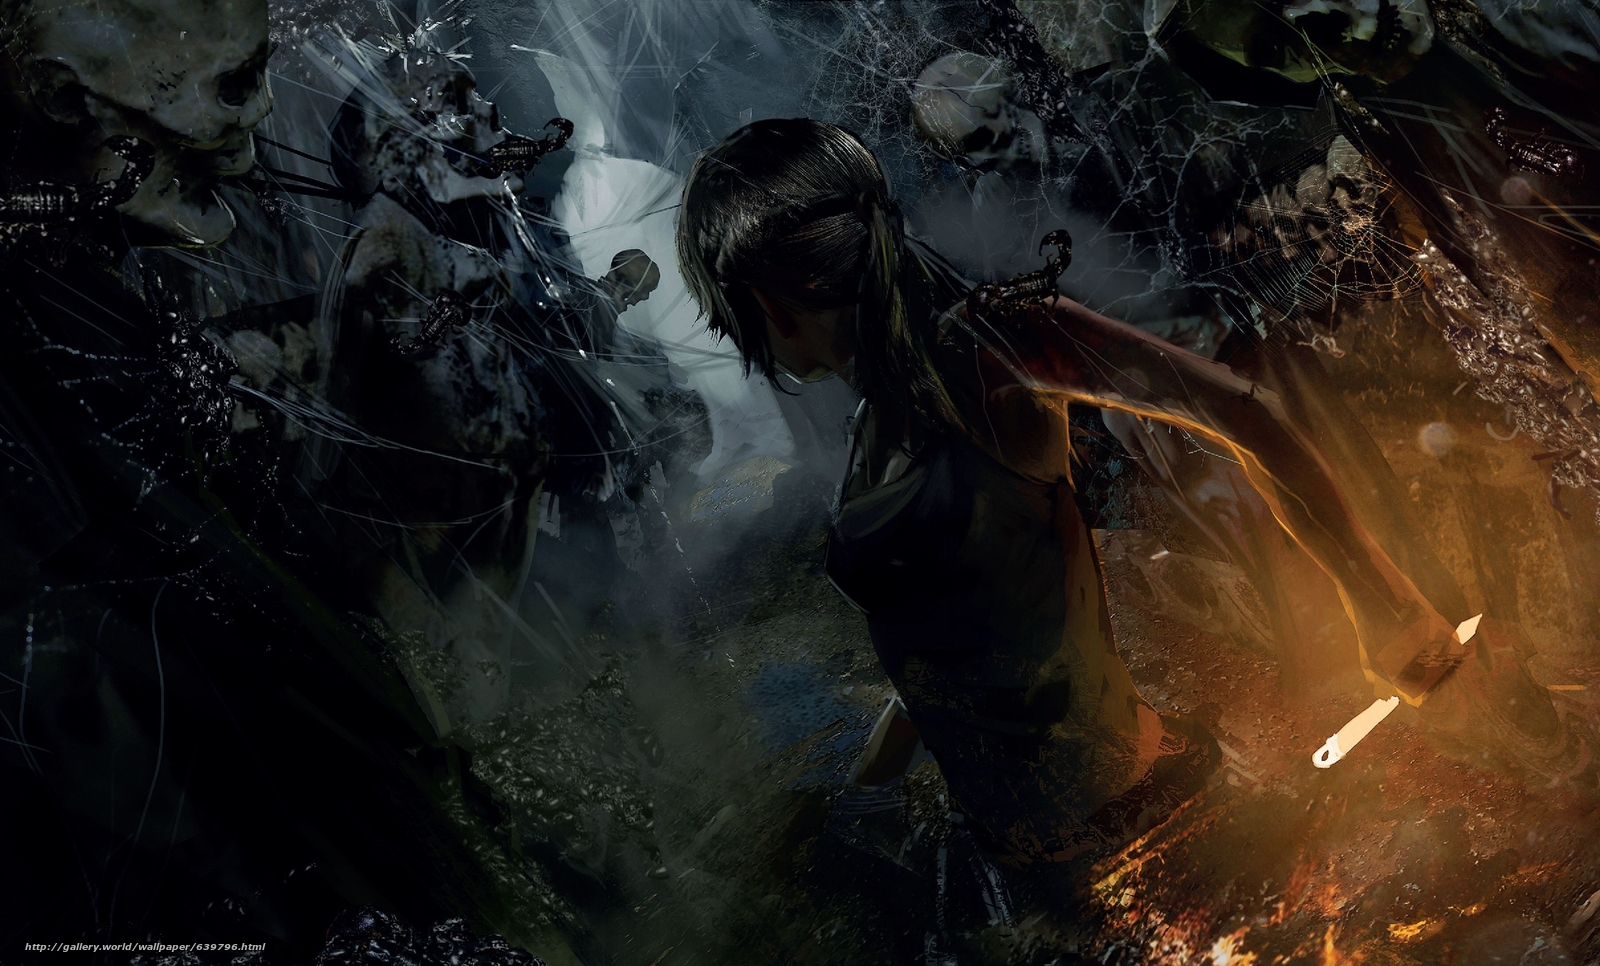 Download wallpaper Rise of the Tomb Raider,  Tomb Raider,  Lara Croft,  skeletons free desktop wallpaper in the resolution 3612x2180 — picture №639796